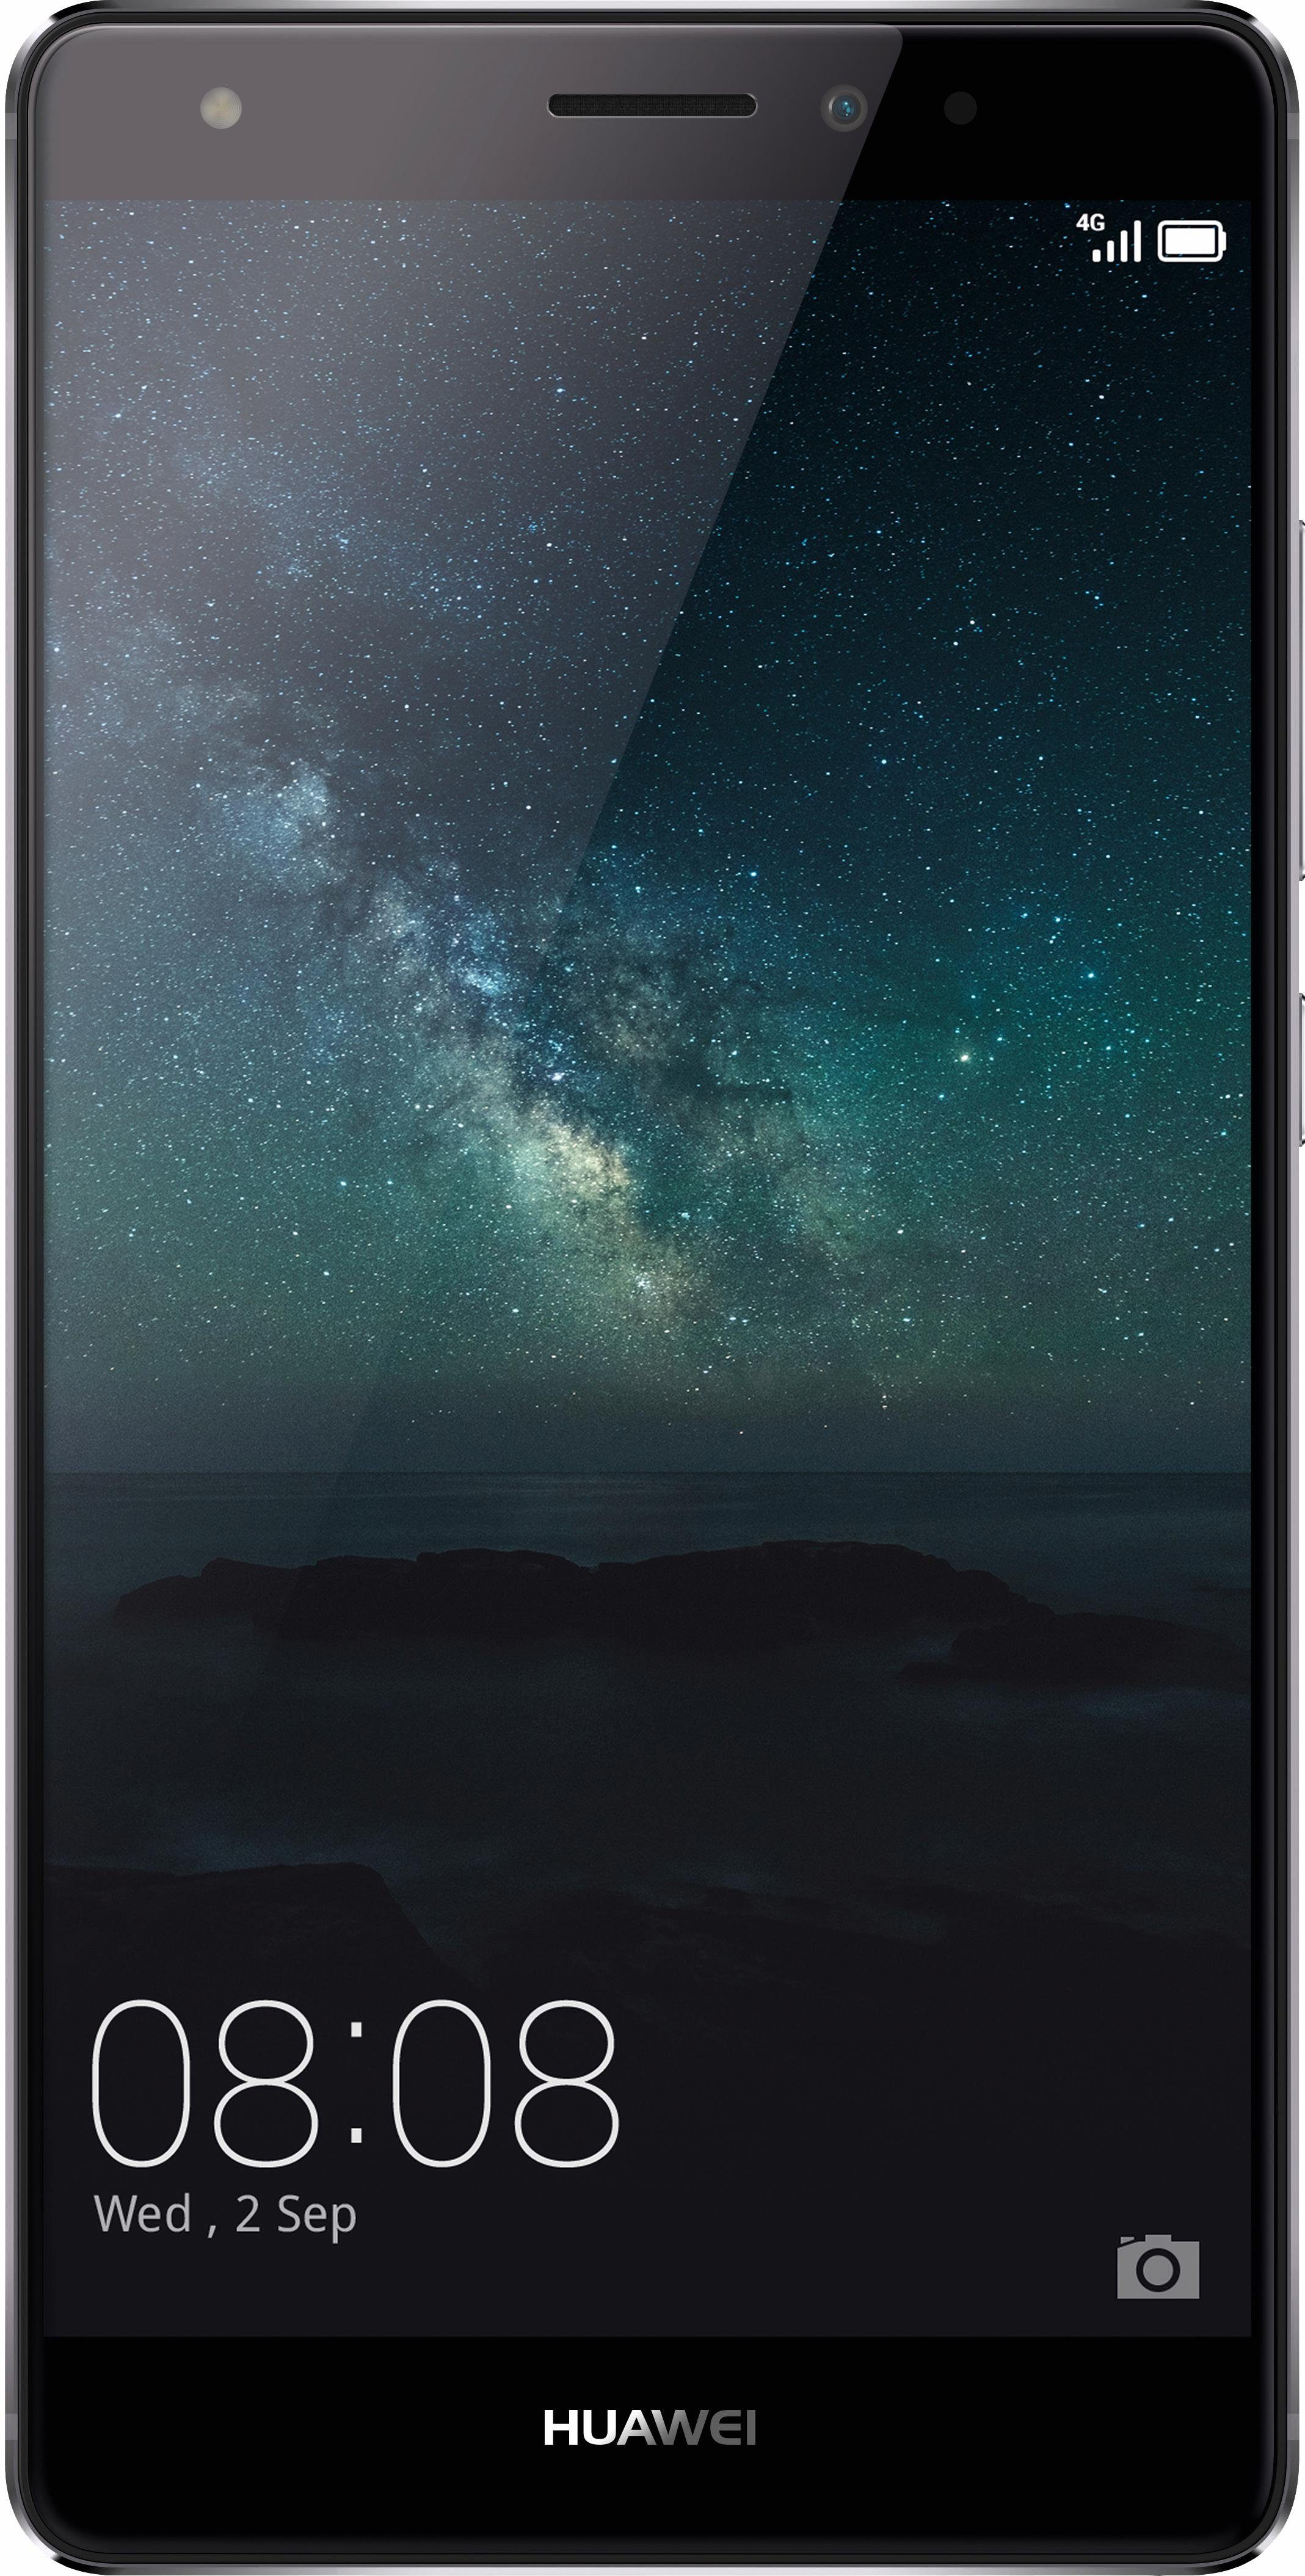 Huawei Mate S Smartphone, 13,9 cm (5,5 Zoll) Display, LTE (4G), Android™ 5.1.1 (mit EMUI 3.1)